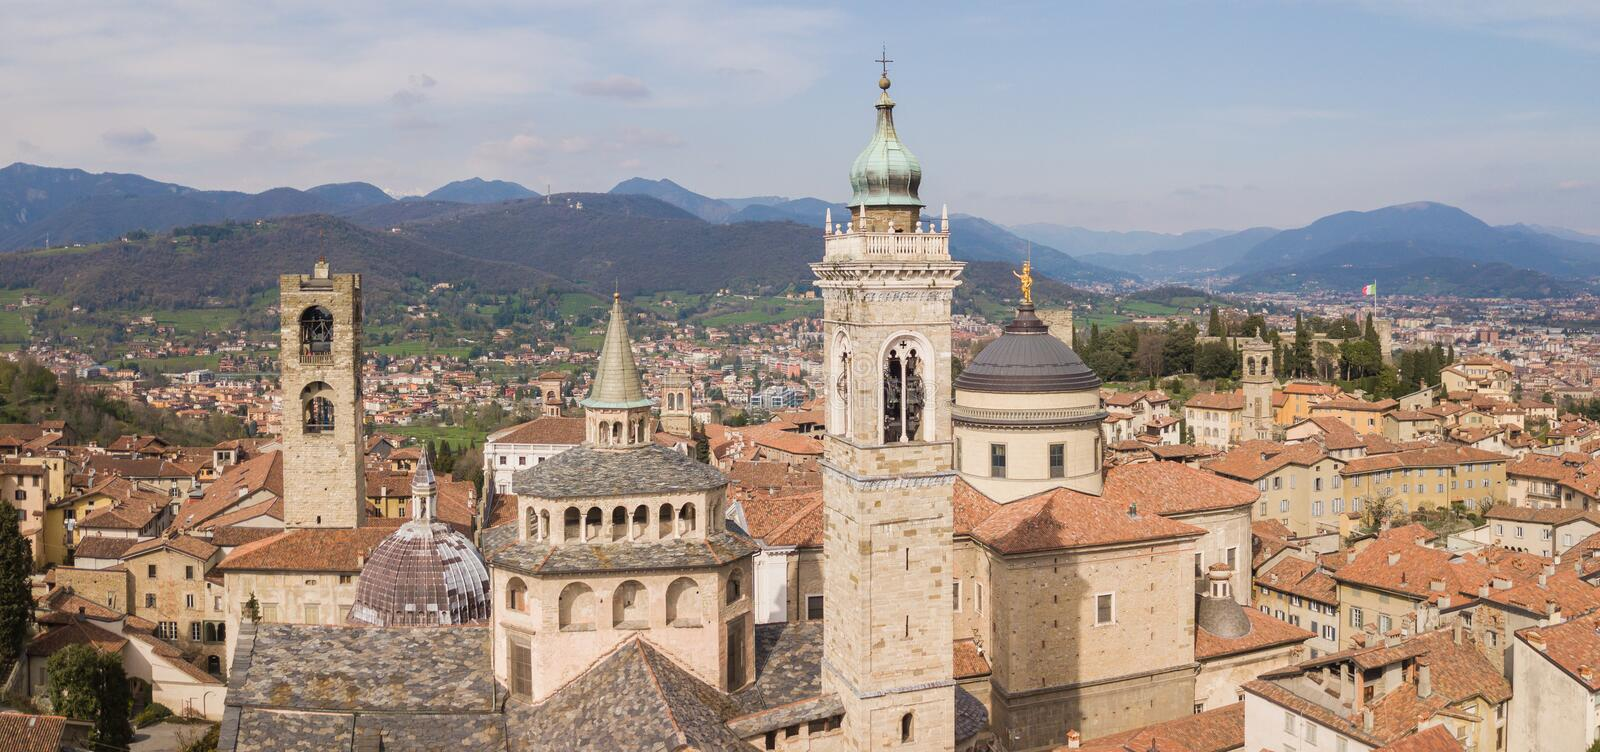 Bergamo, Italy. Drone aerial view of the old town. Landscape at the city center, its historical buildings, churches and towers stock image